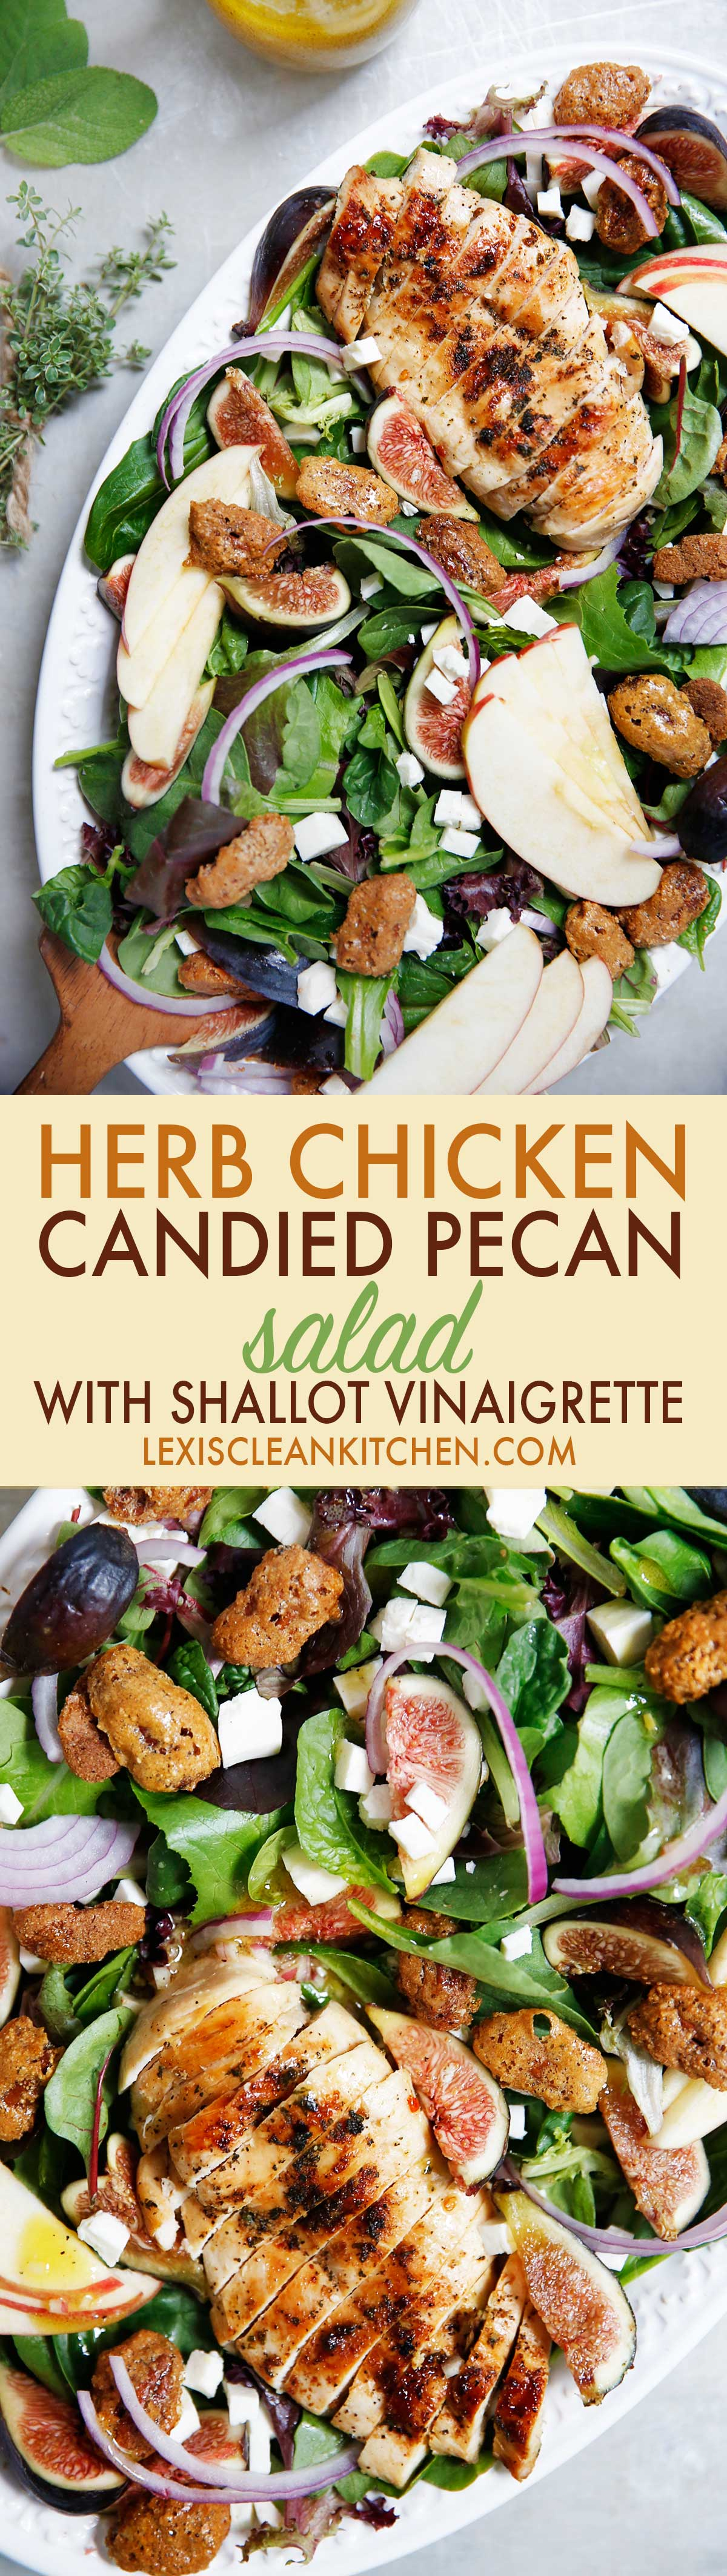 Herb Chicken Candied-Pecan Salad | Lexi's Clean Kitchen